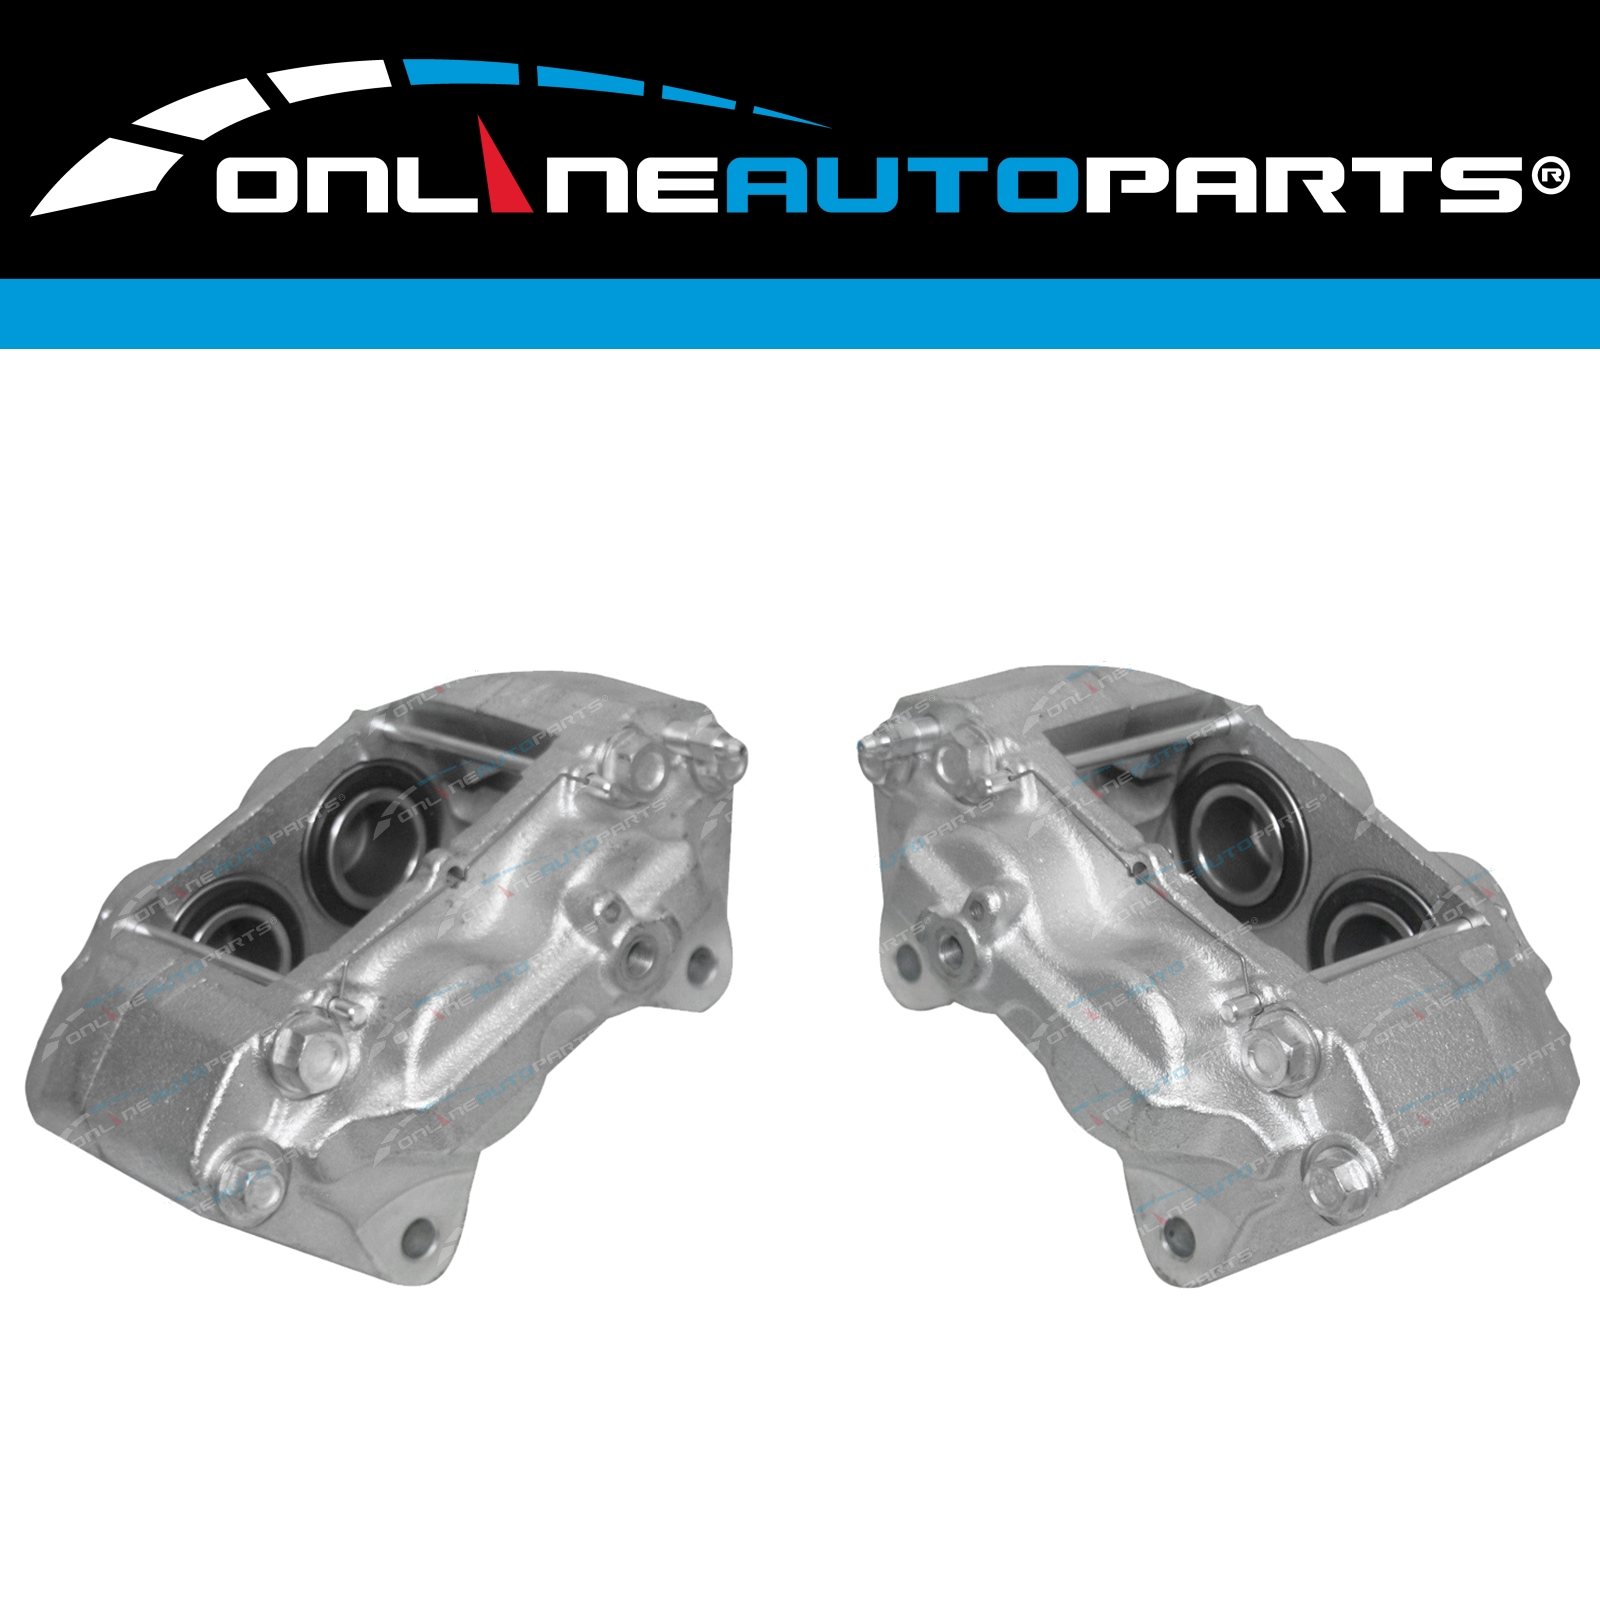 2 Front Brake Calipers suits Landcruiser VDJ76 VDJ78 VDJ79 78 79 Series 2007~12